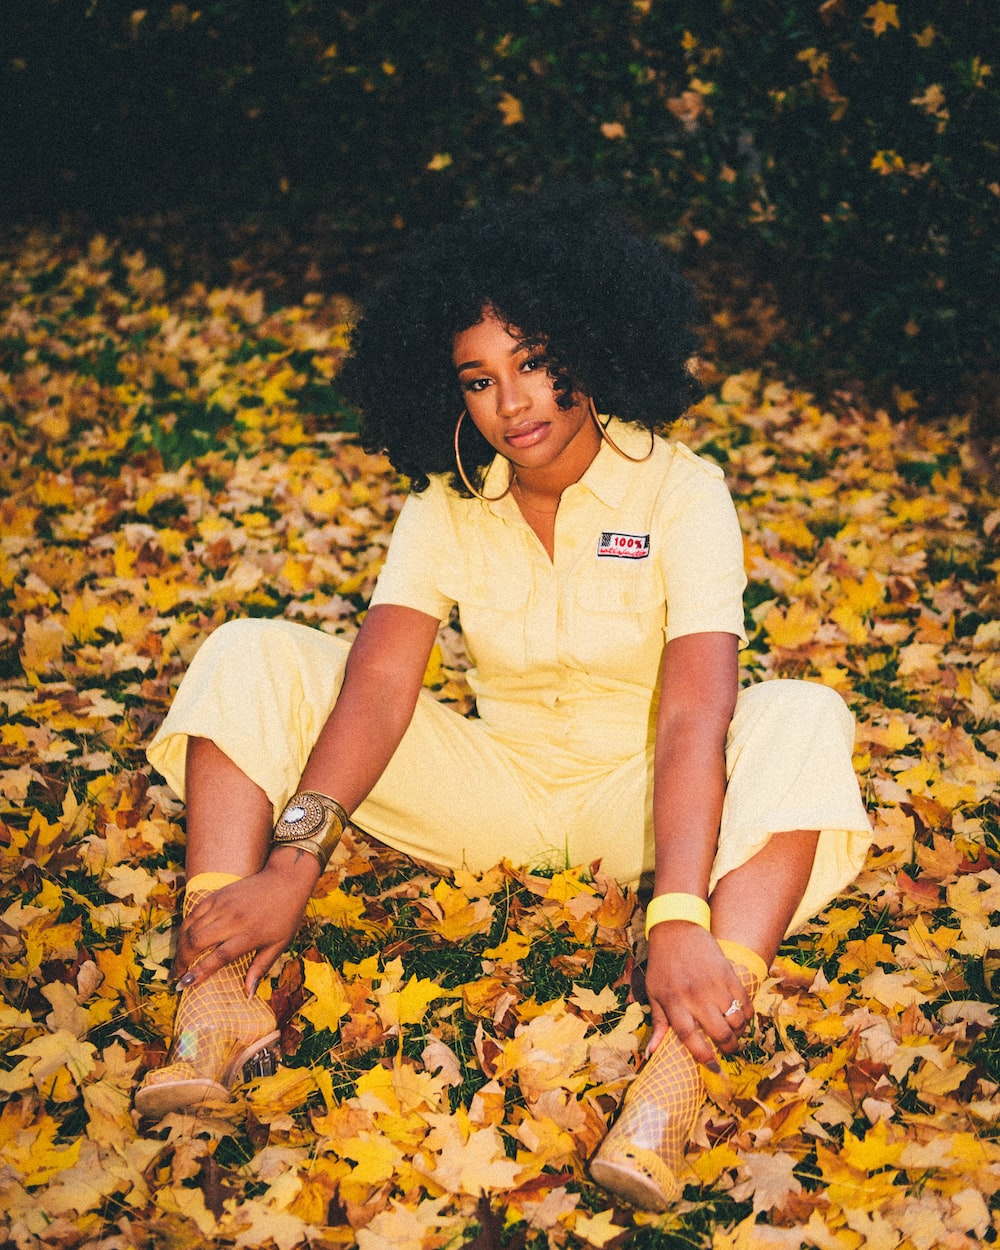 woman in white crew neck t-shirt and yellow shorts sitting on yellow leaves